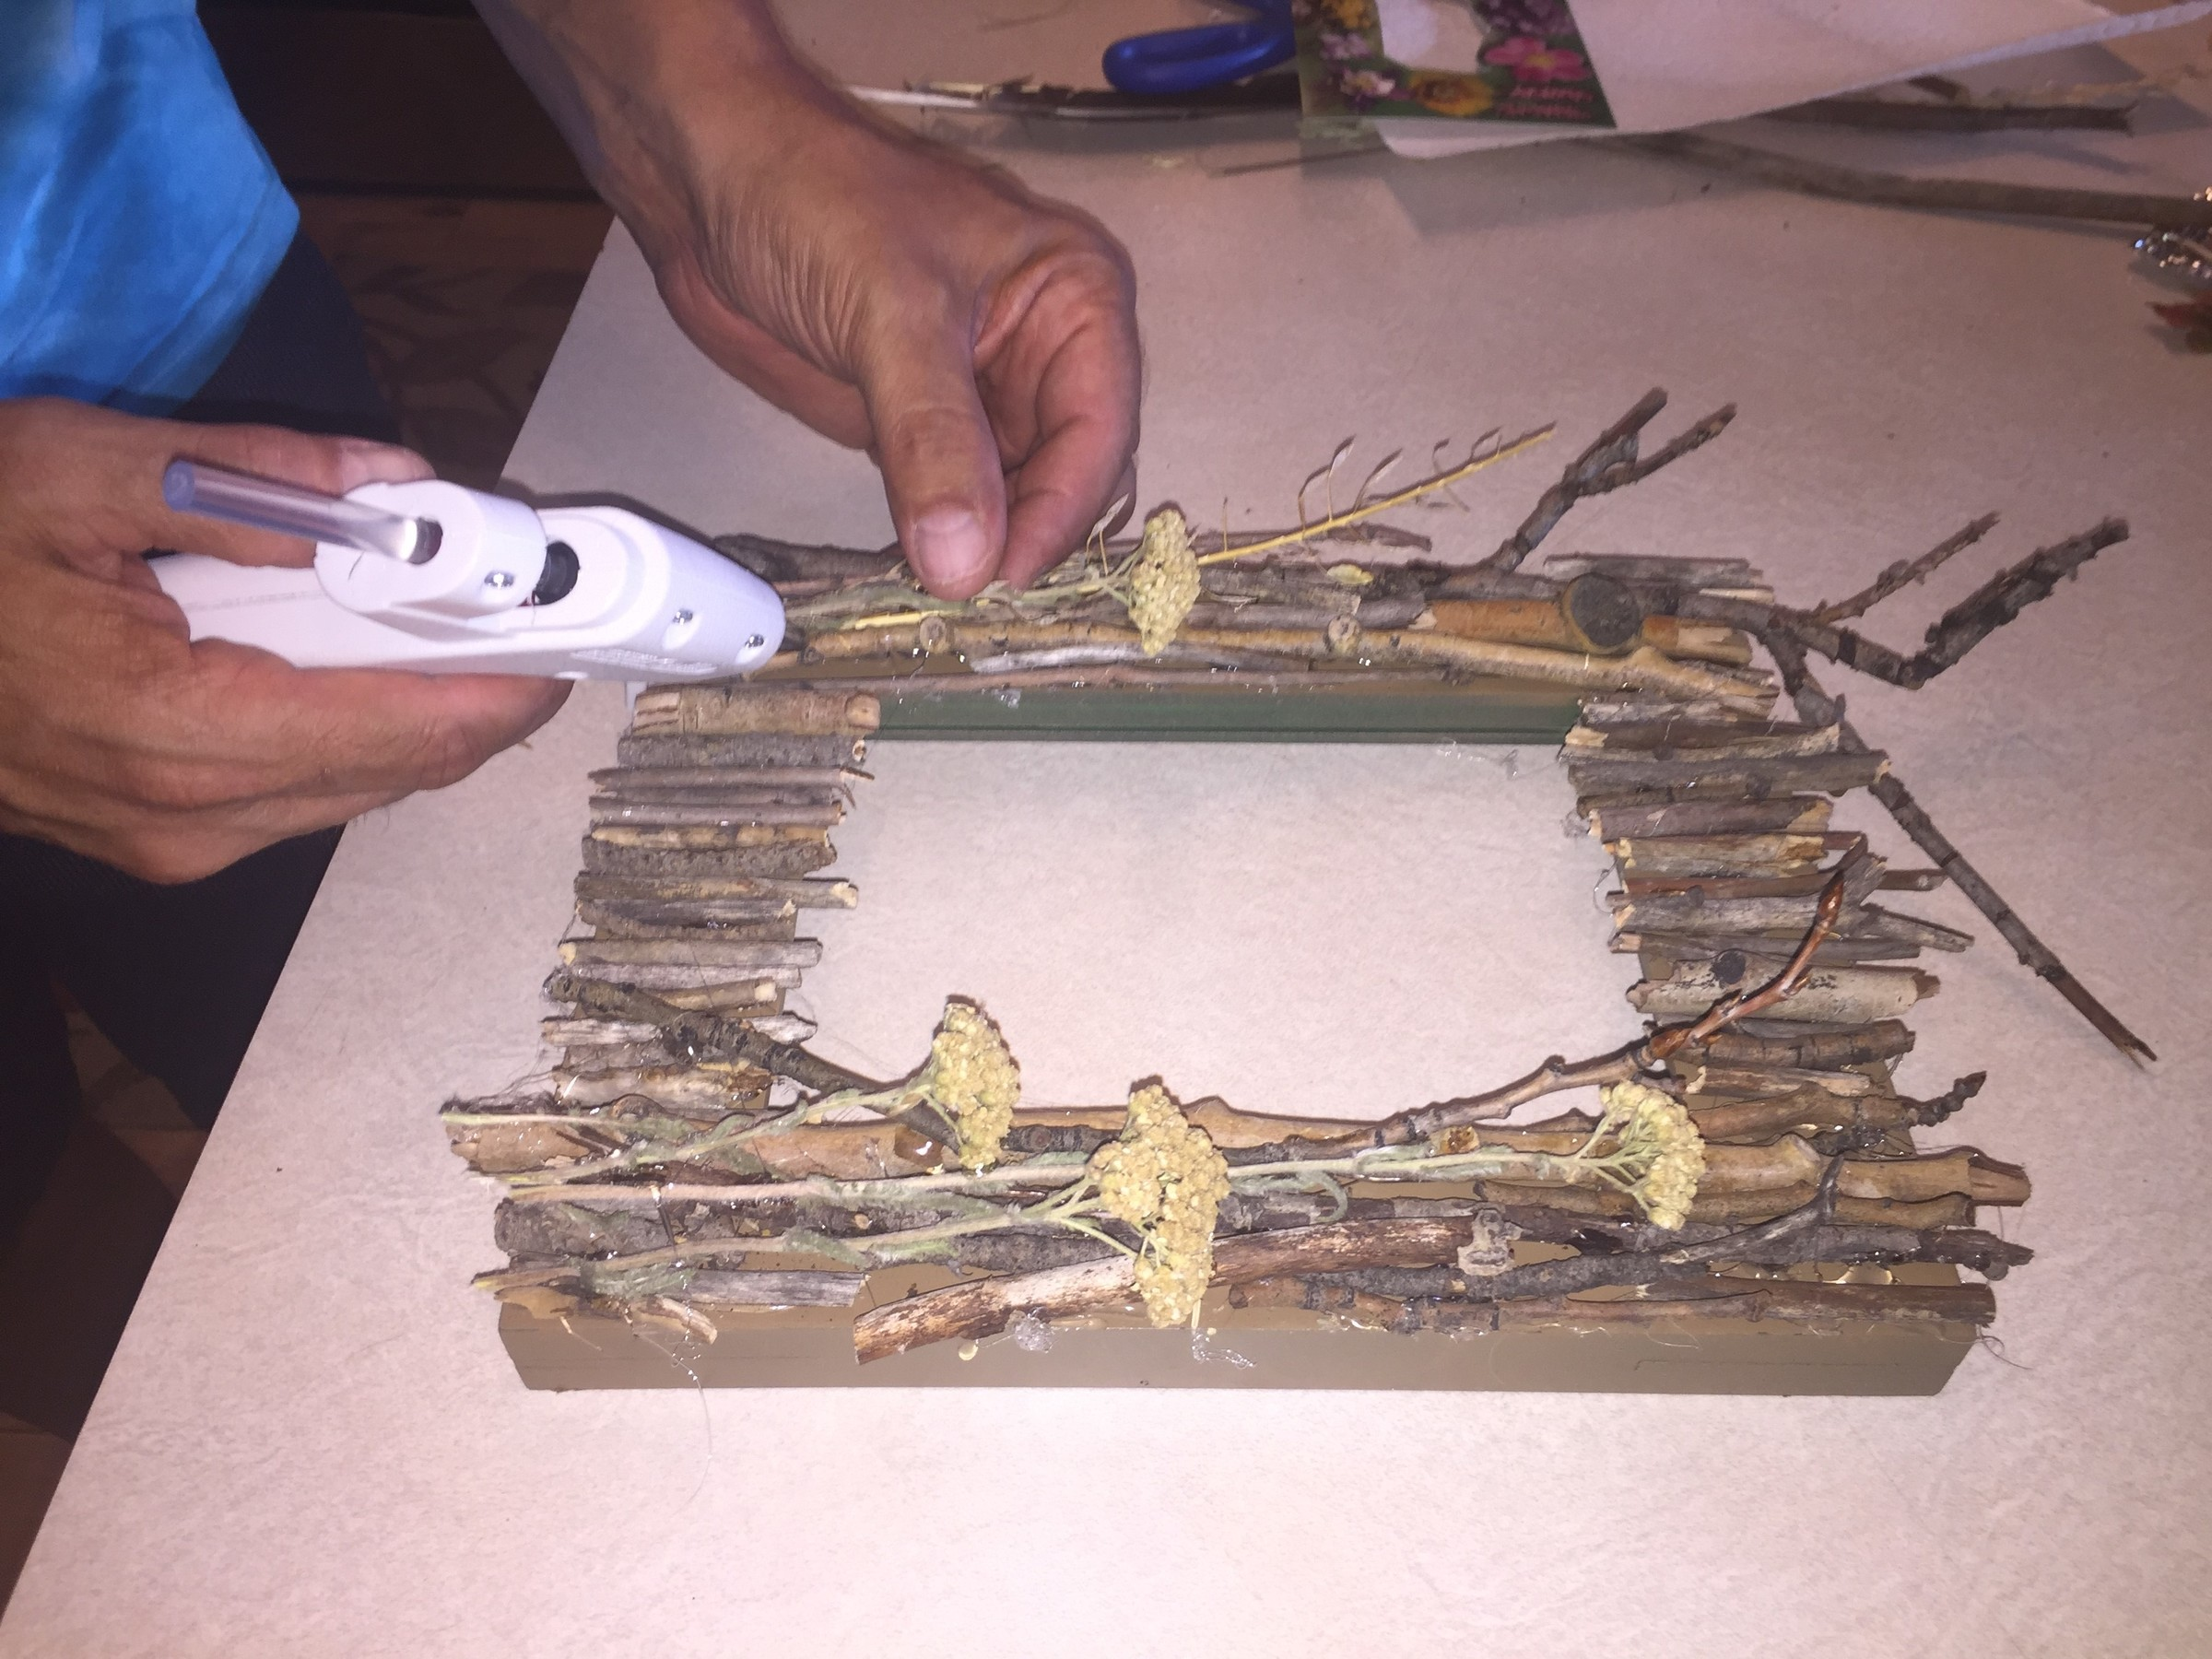 Tim hot glues twigs and flowers to a painted picture frame.